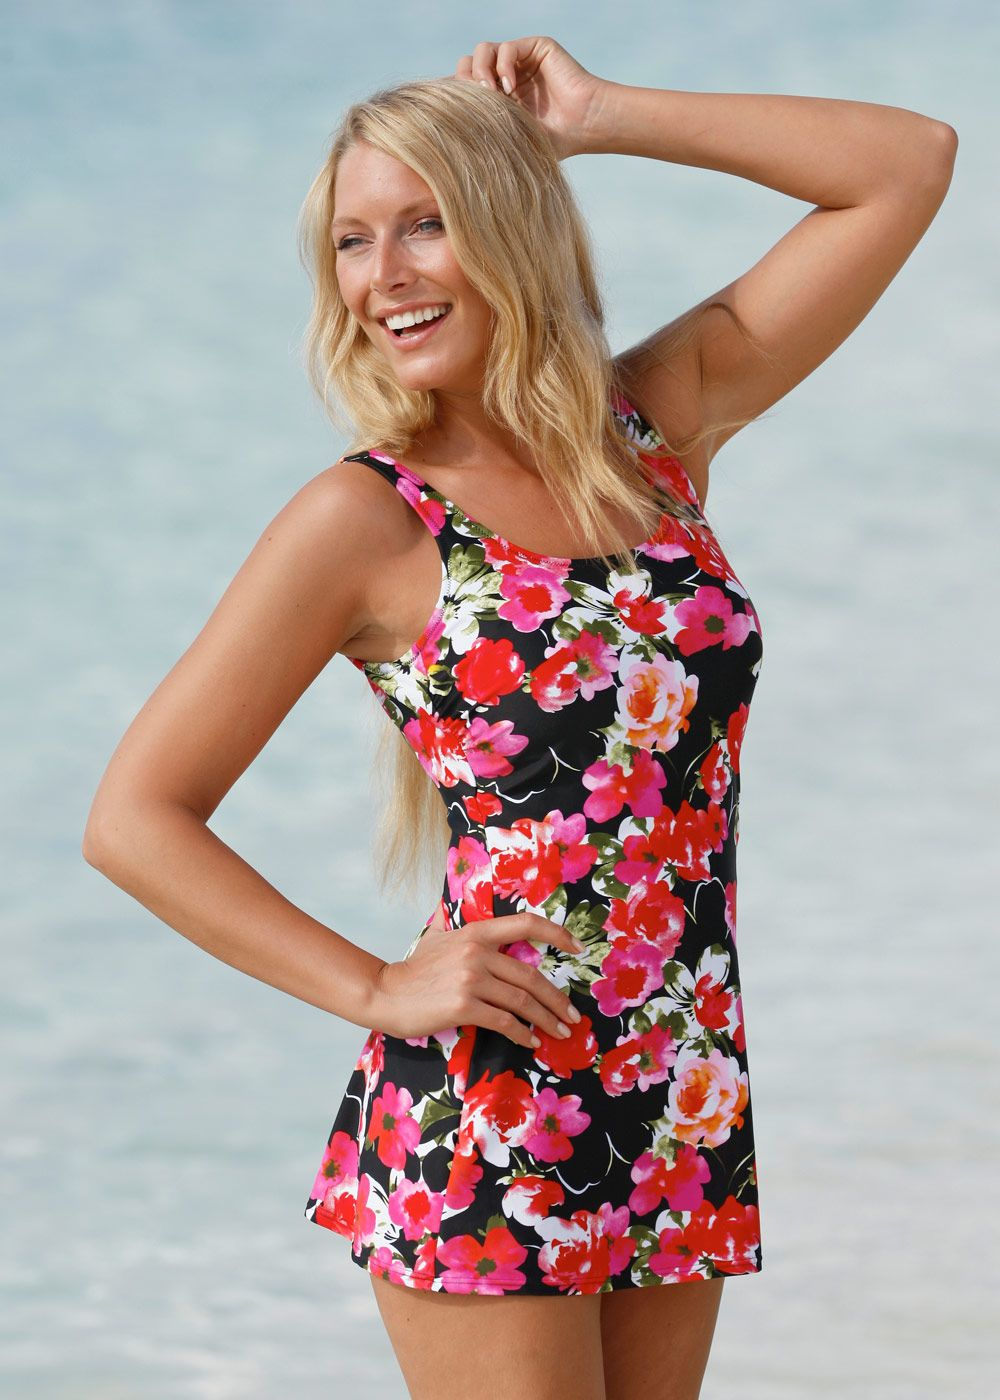 89b3b6e85a4ad Fully skirted mastectomy swimsuit that covers the tops of your legs and  bottom and looks good